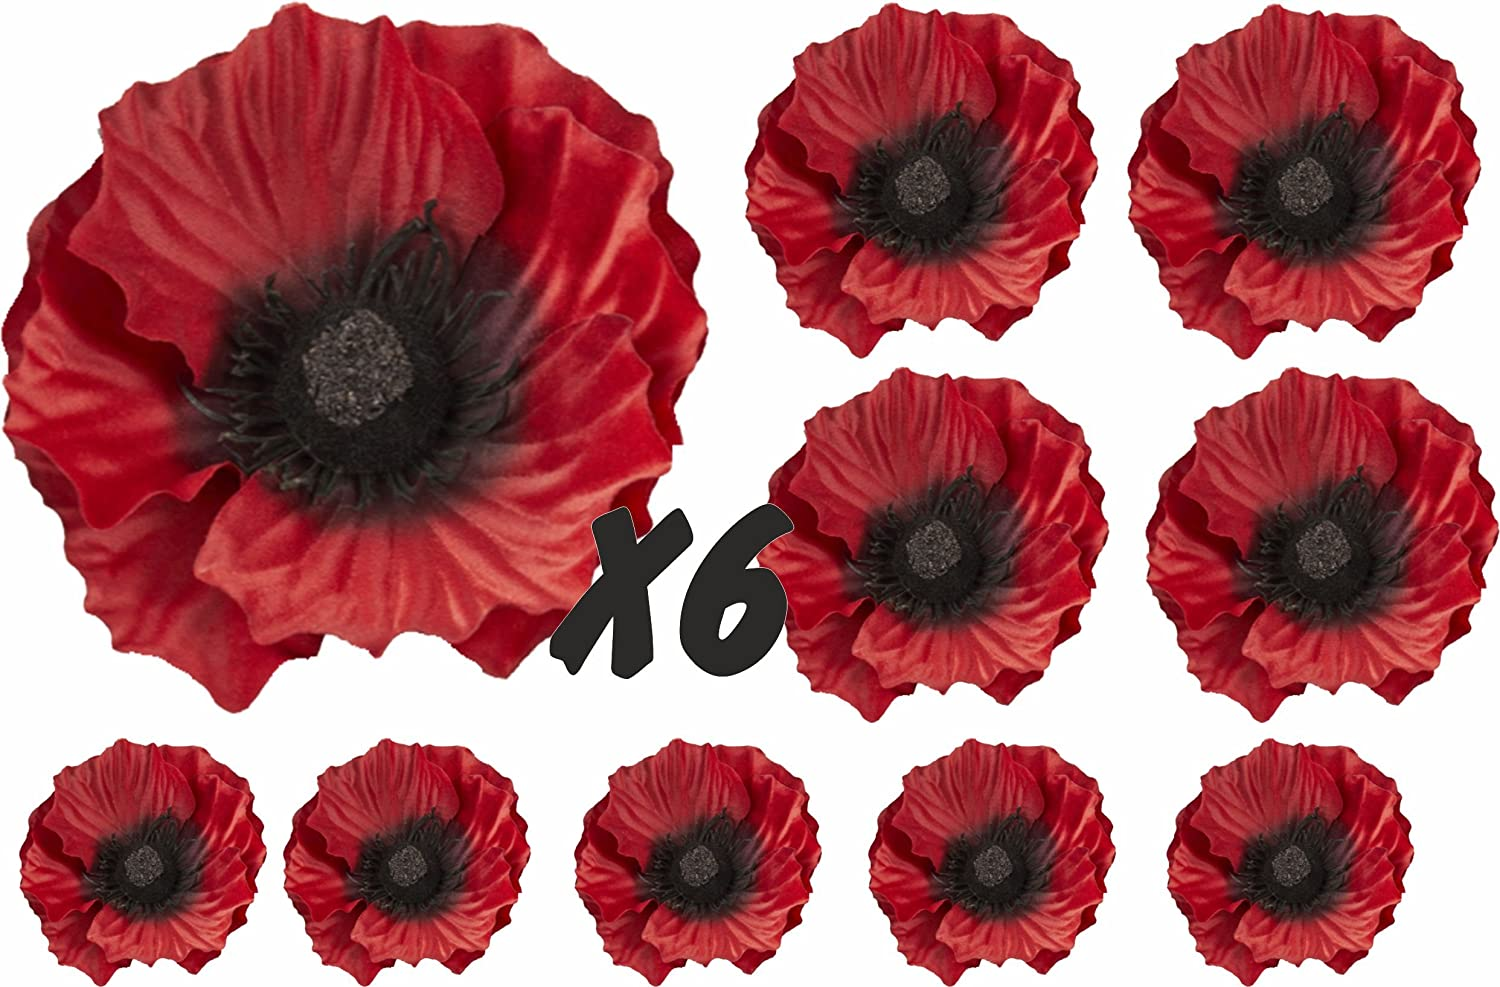 Dark Poppies Flower Decals Car Stickers Graphics Nursery Wall Window Decorations Art 10 Pack (10) WaterShed Designs